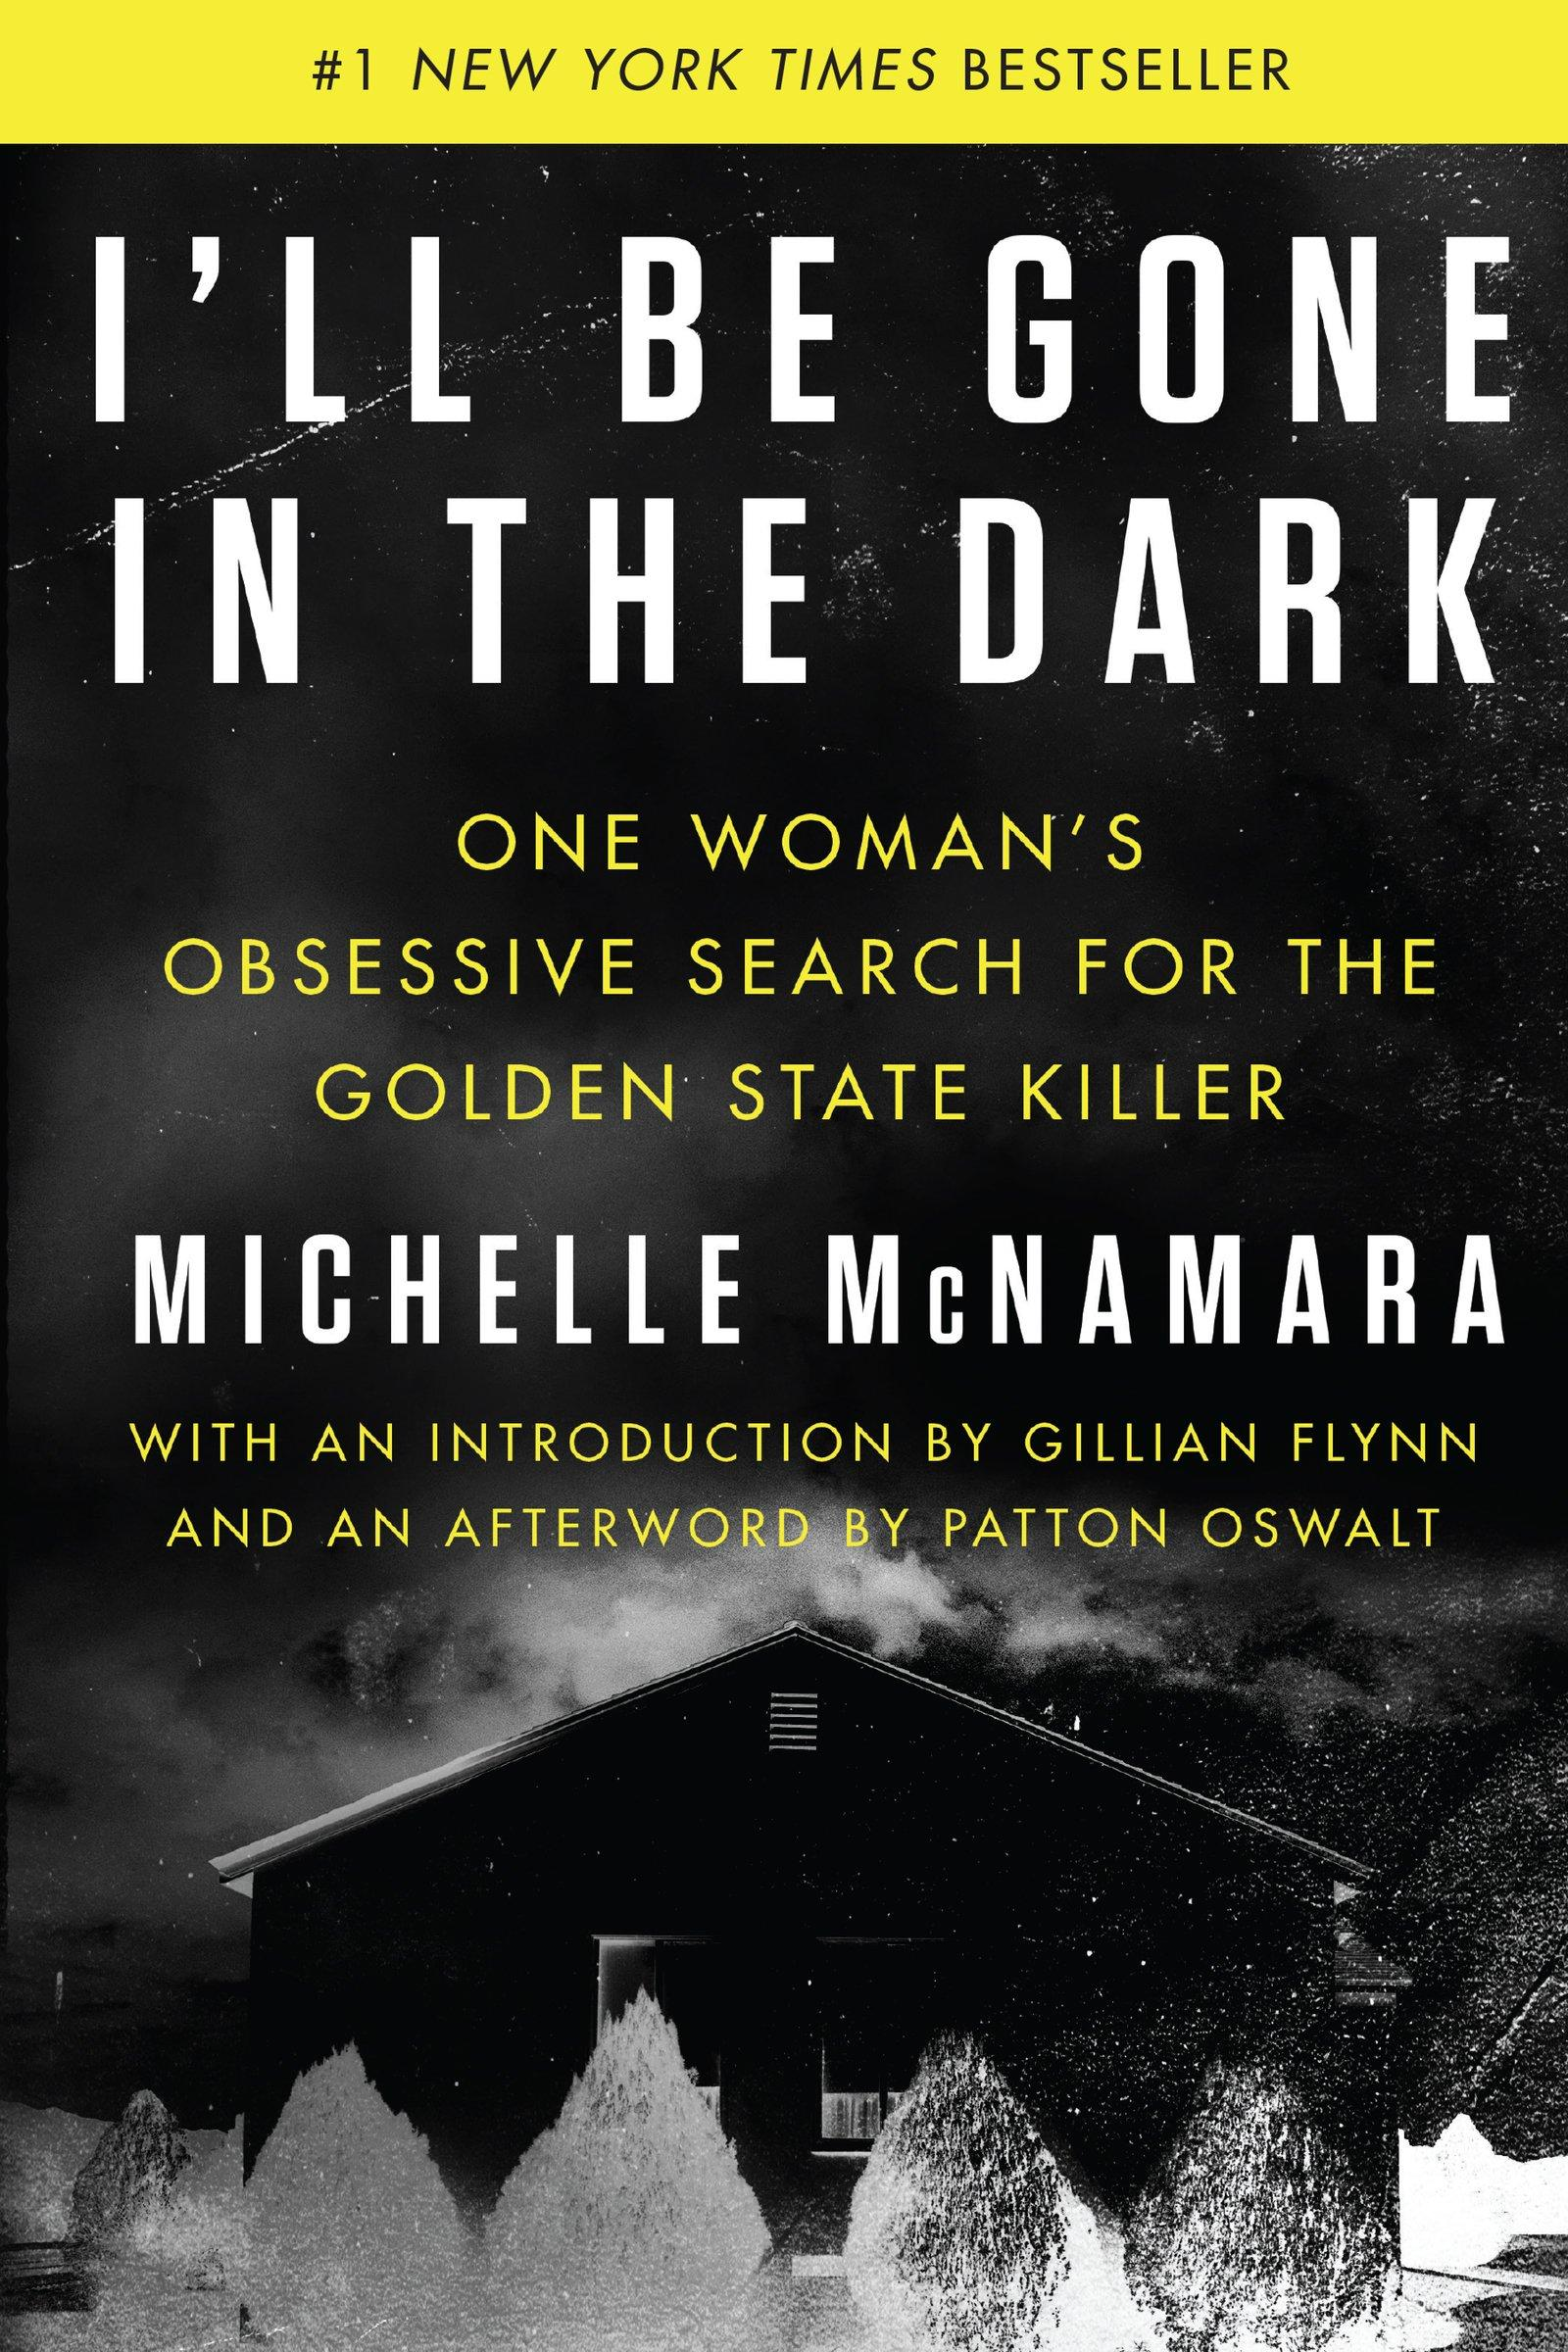 book cover for i'll be gone in the dark